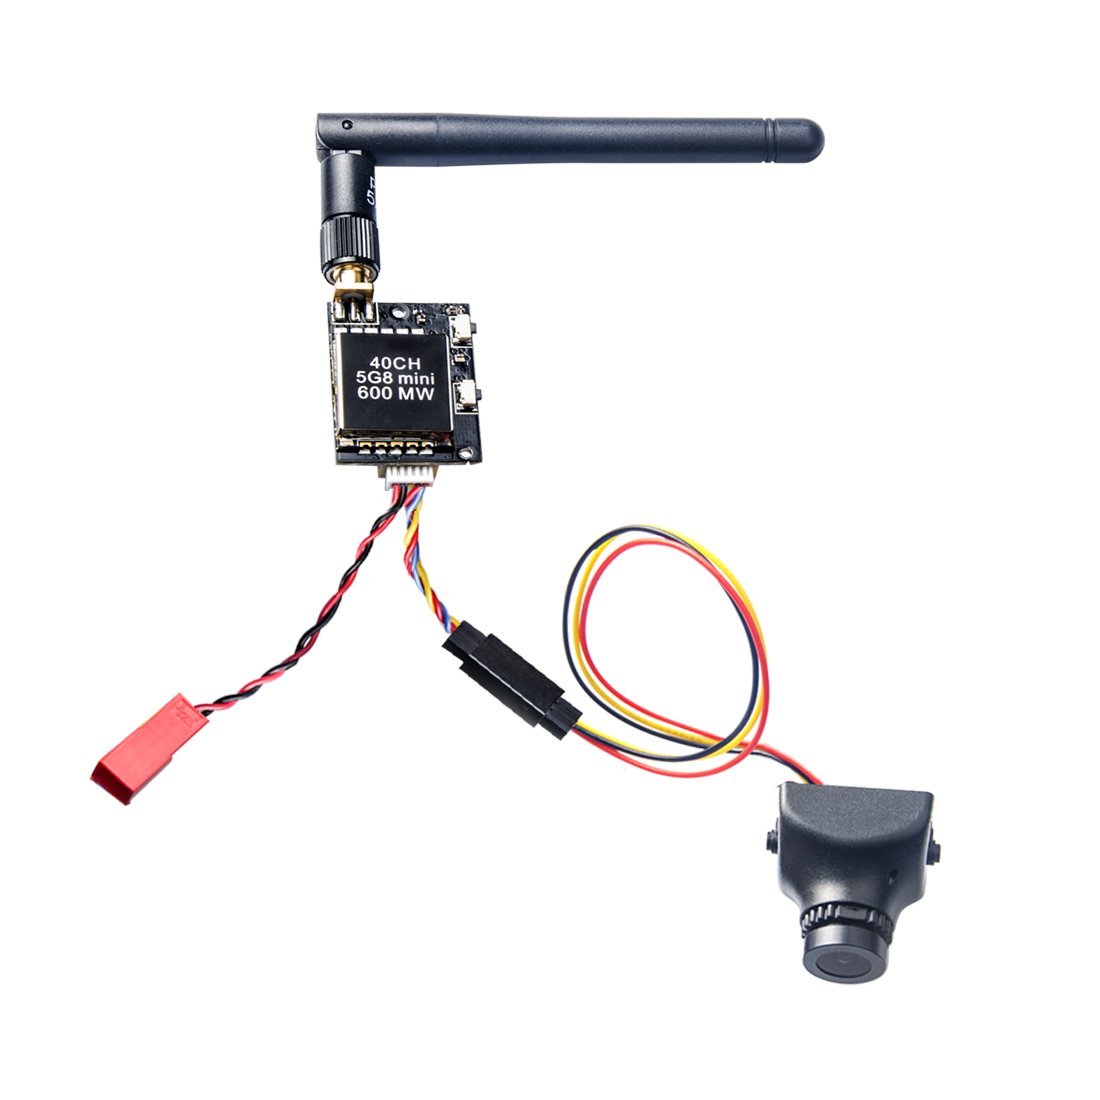 AKK KC04 5.8G 40Ch 600mW Transmitter 700TVL 2.8mm 120 Degree FPV Camera for Racing Quadcopter